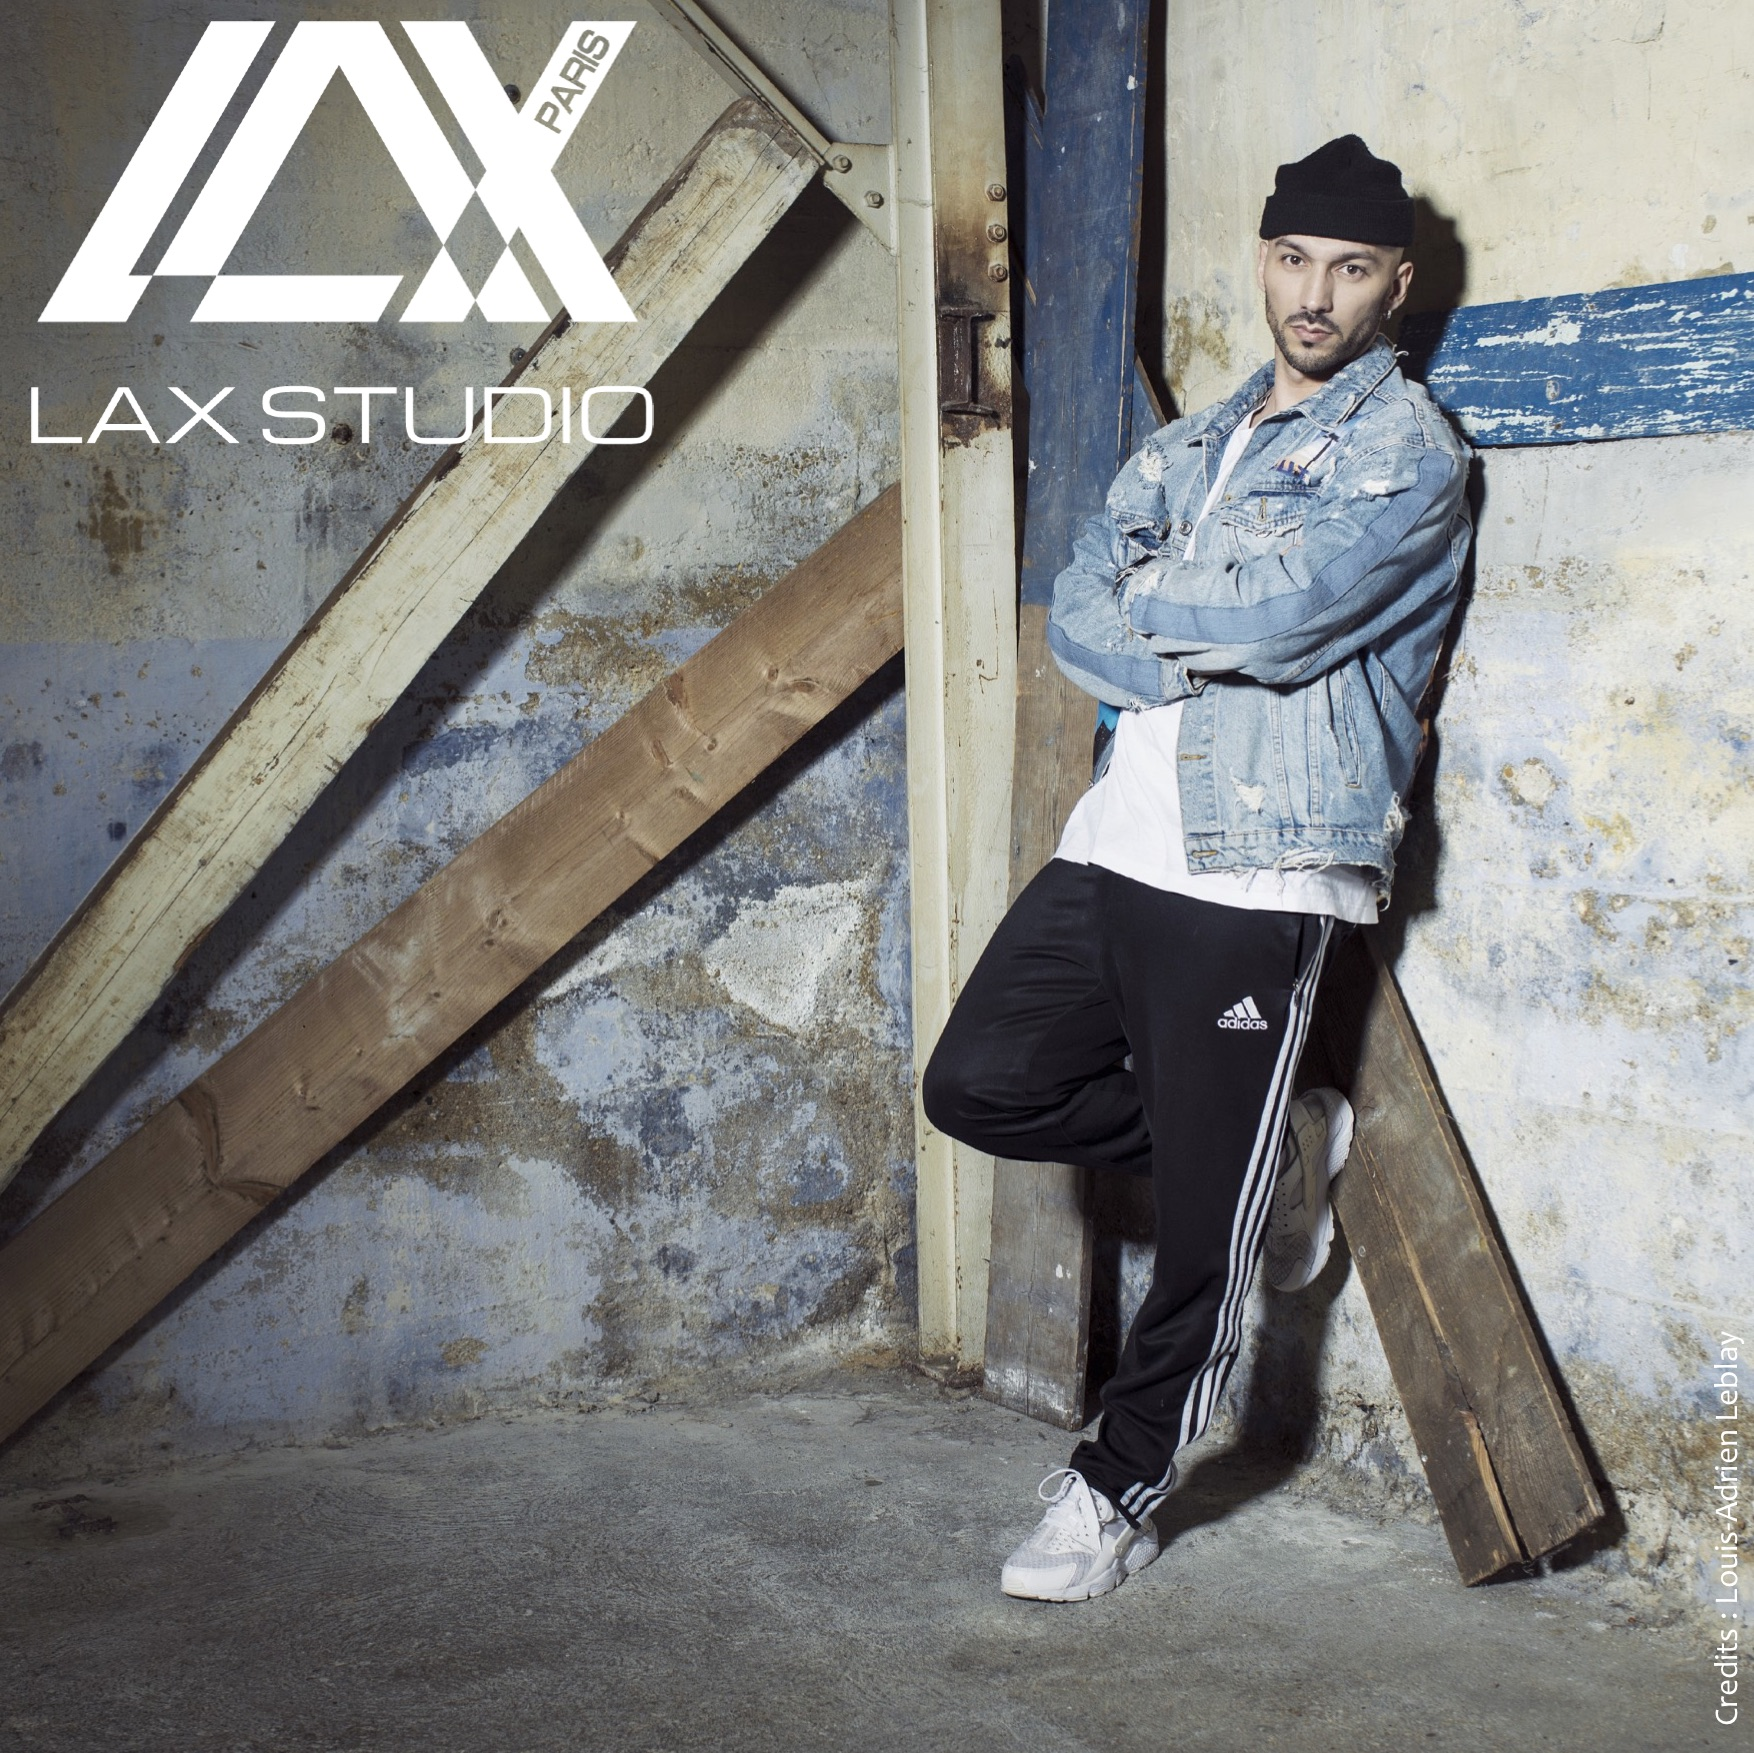 mo hiphop hip hop LAX STUDIO danse dance cours école paris ecole school louis adrien leblay photo